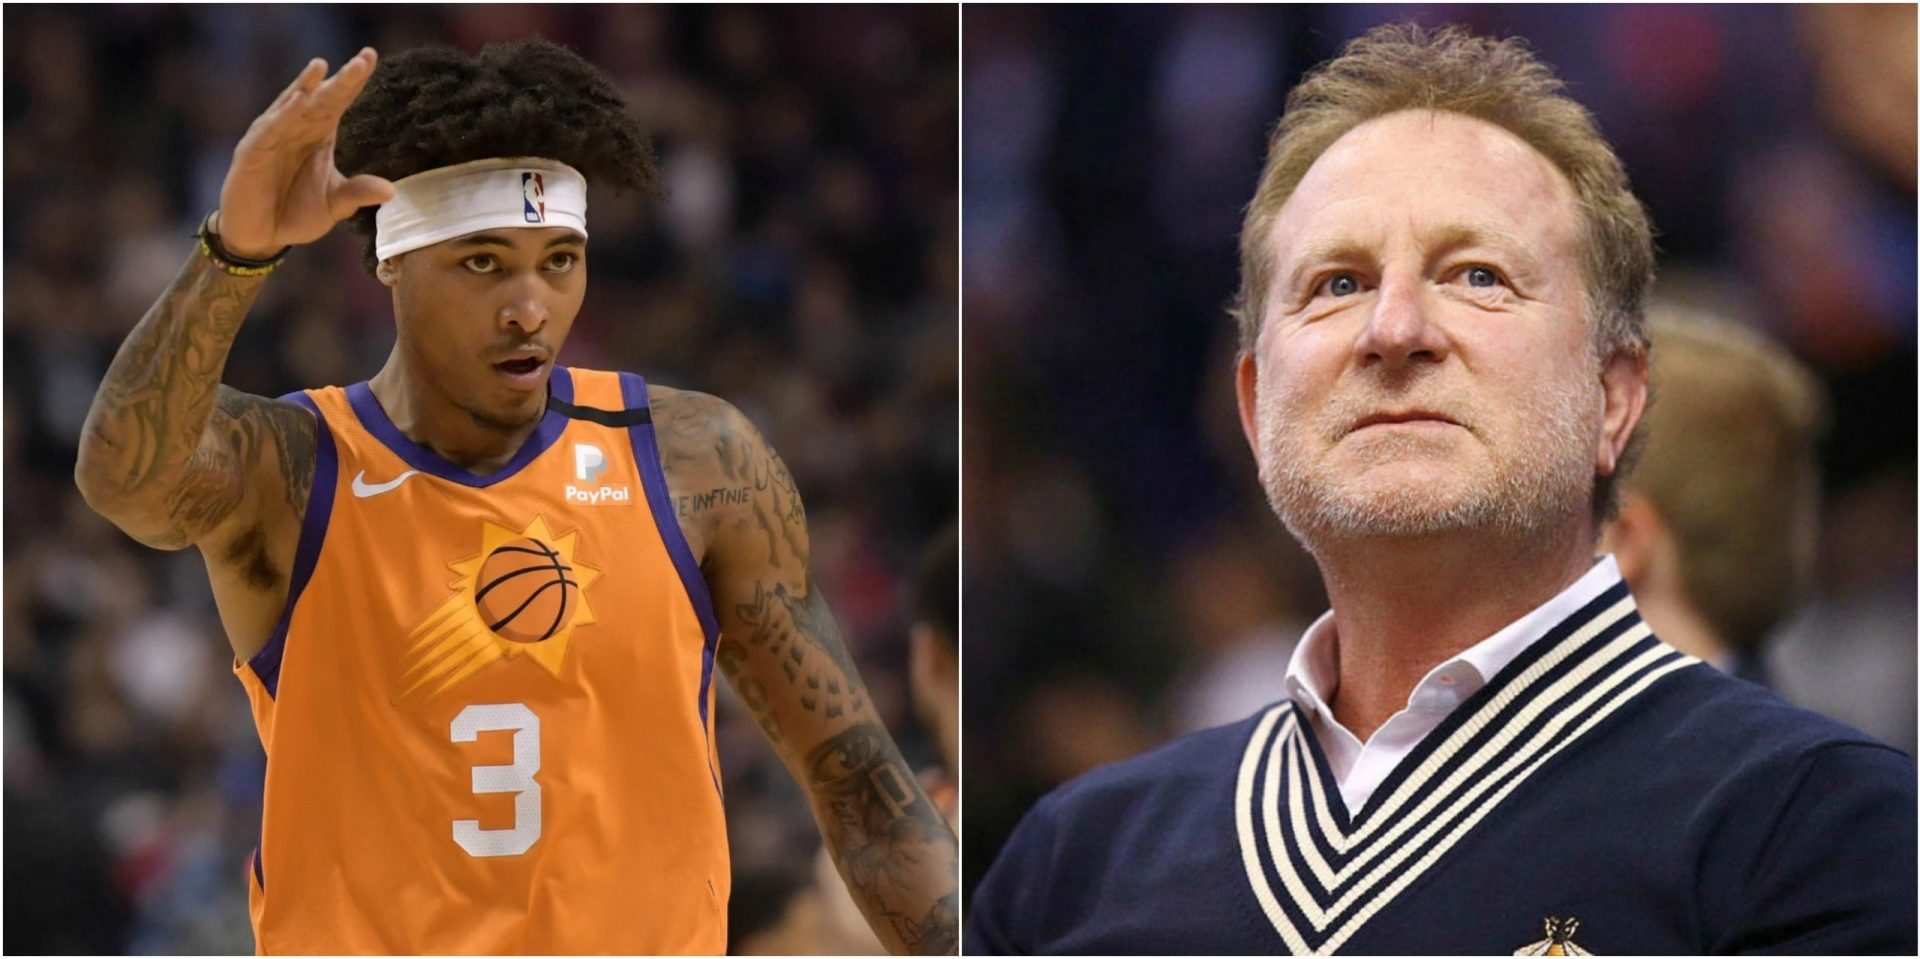 Kelly Oubre Jr takes a light jibe at Phoenix Suns owner Robert Sarver - THE SPORTS ROOM